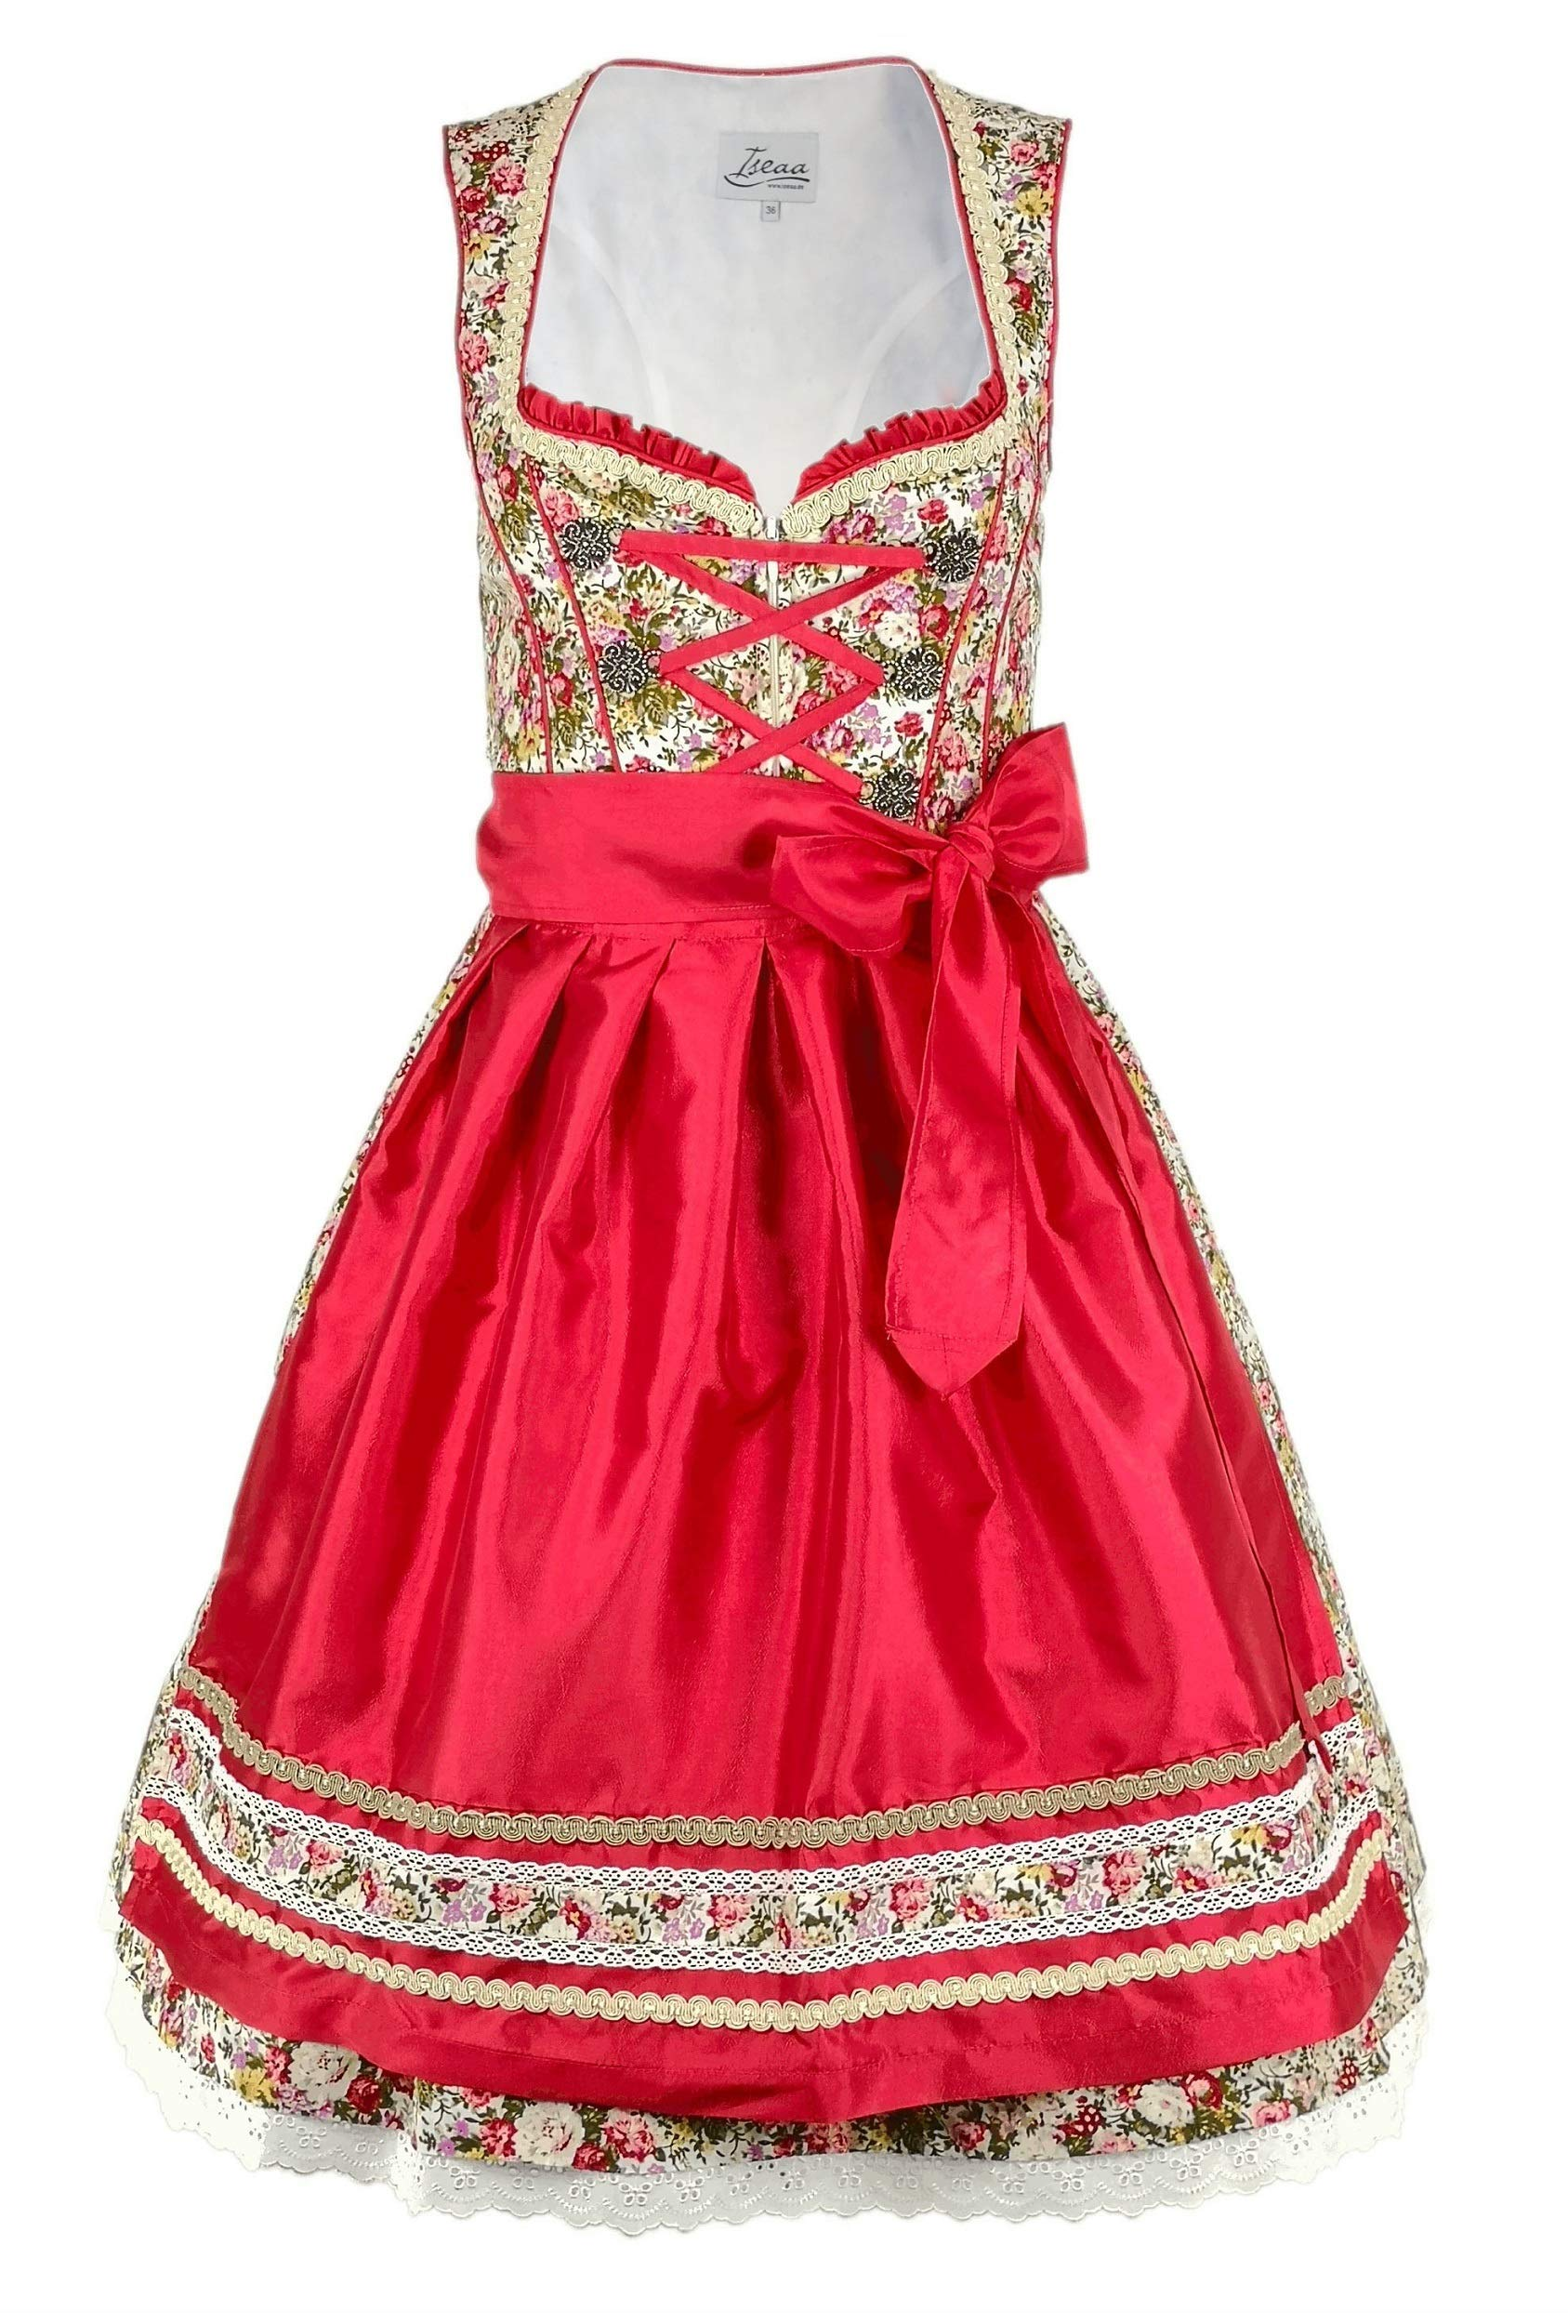 Dirndl 2 pcs. Traditional Dress Lara with Apron in red 40